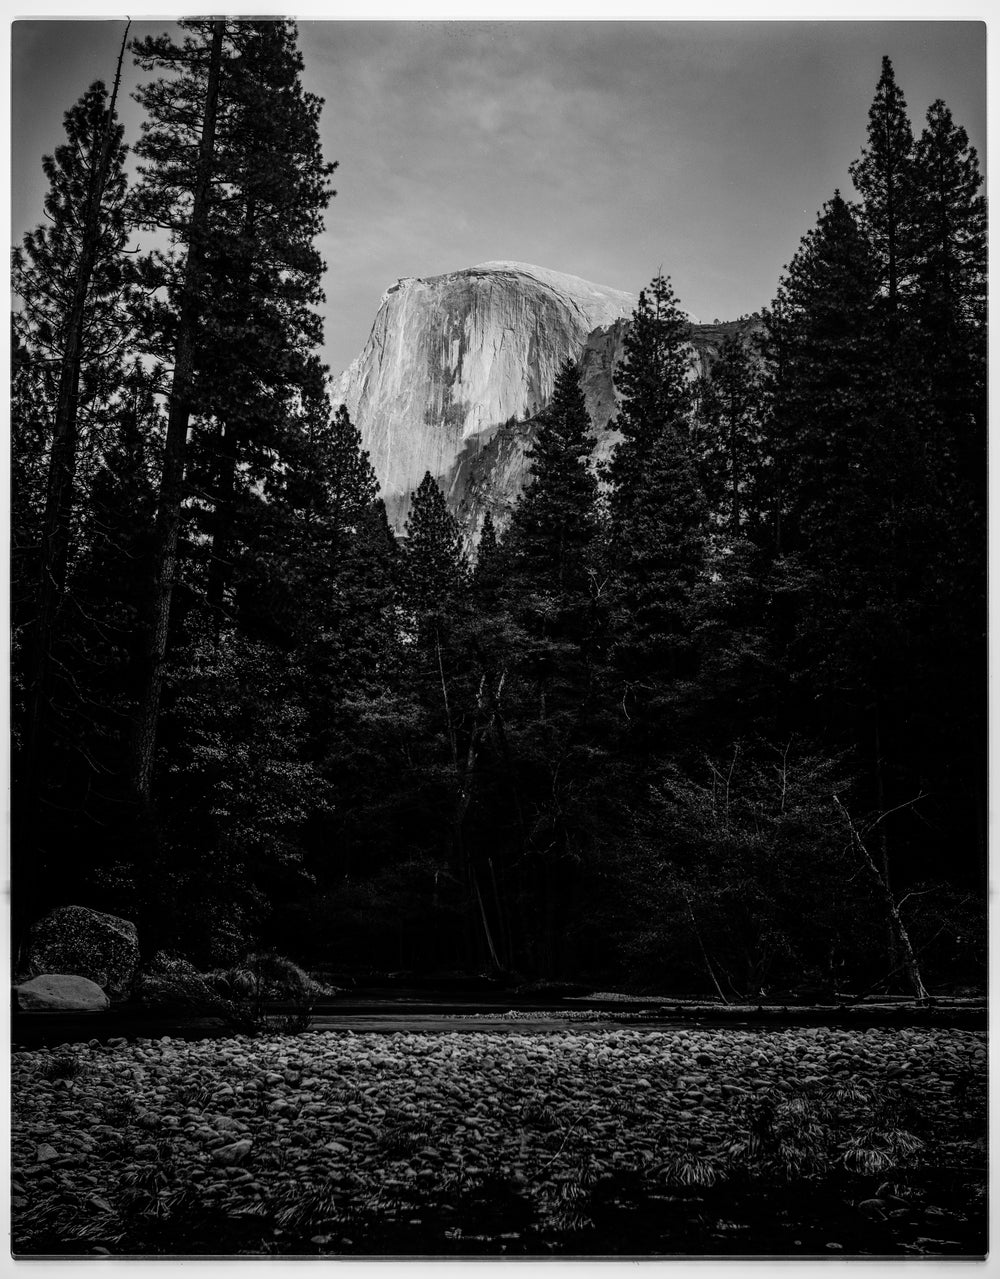 Image of Yosemite 01